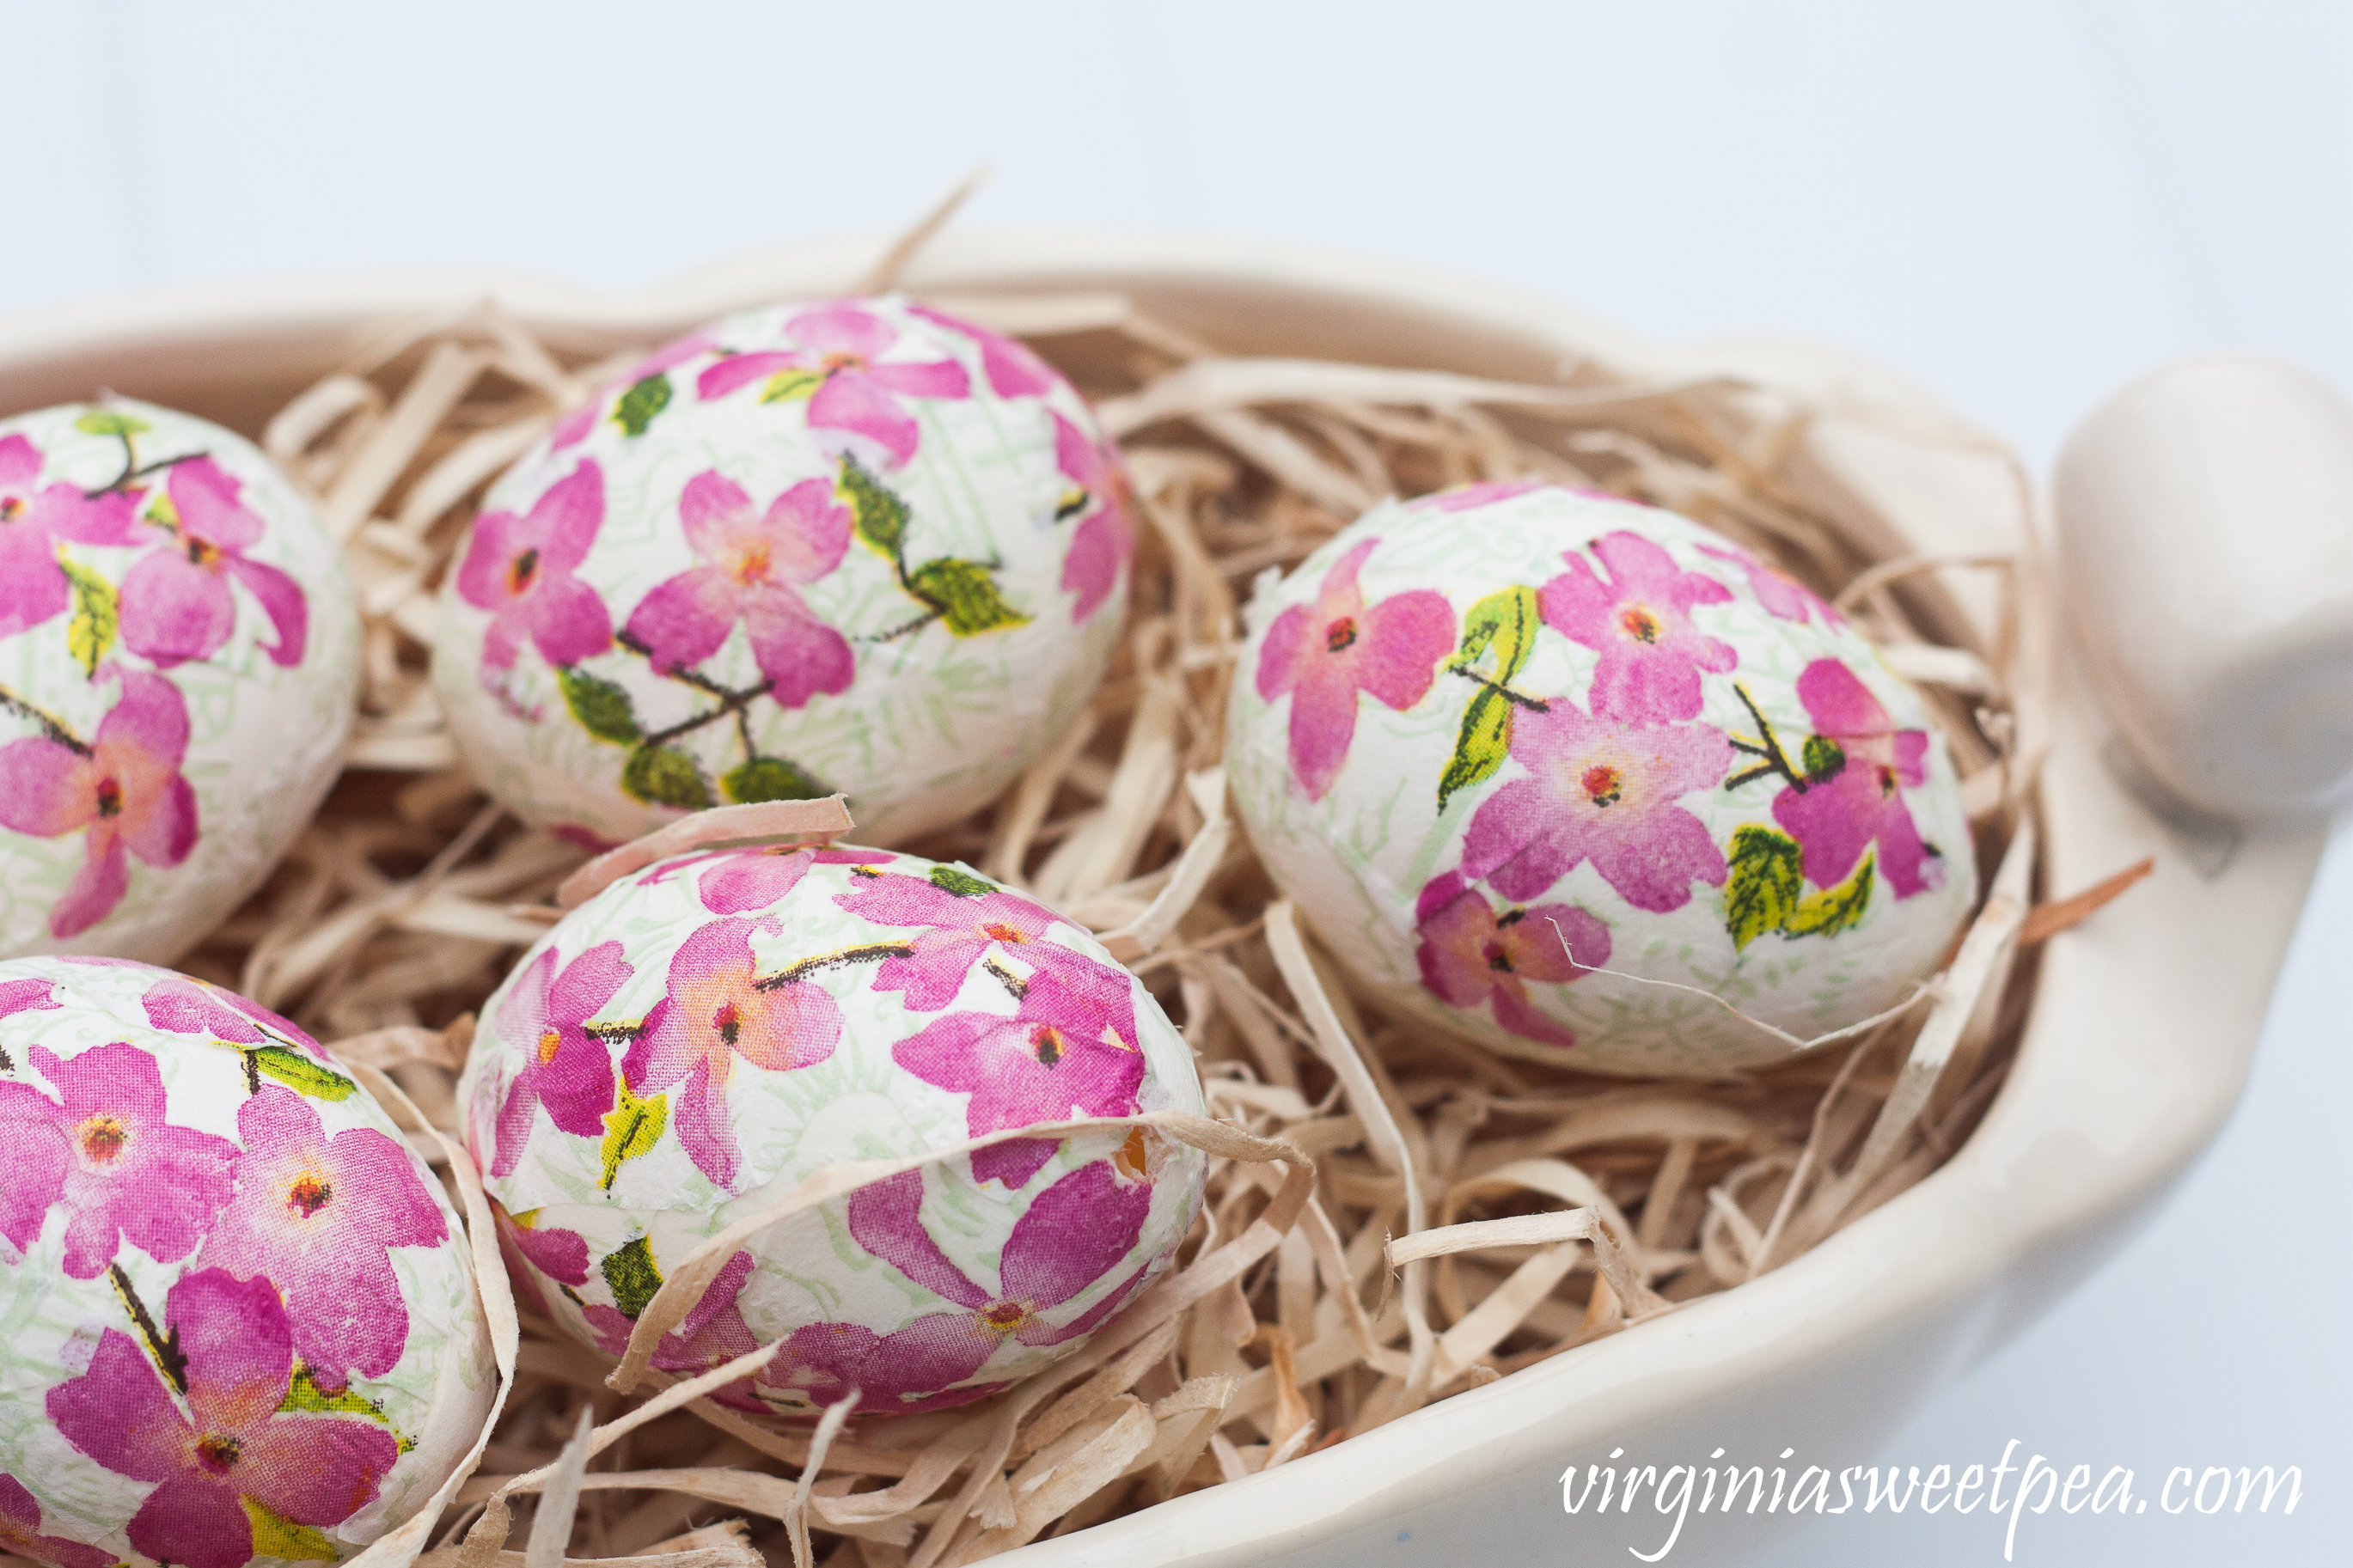 DIY Decoupaged Floral Easter Eggs - #easter #eastercraft #eastereggs #easterdecor #decoupage #decoupagedeggs